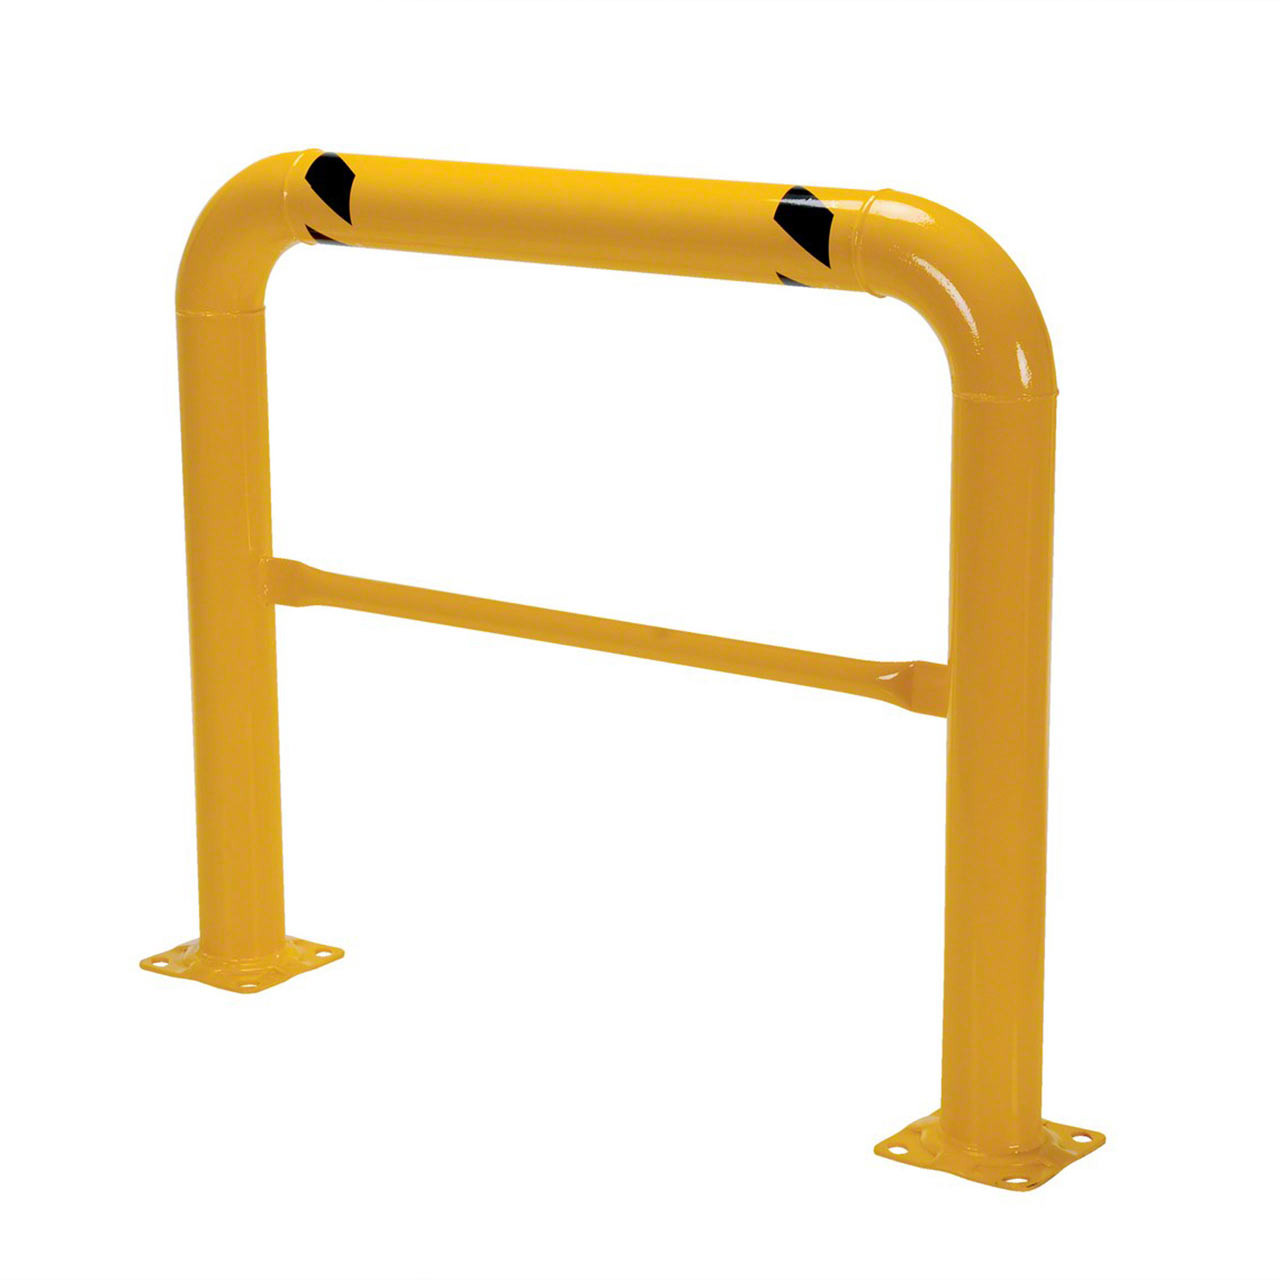 Keep machinery and rack safe with a steel barrier